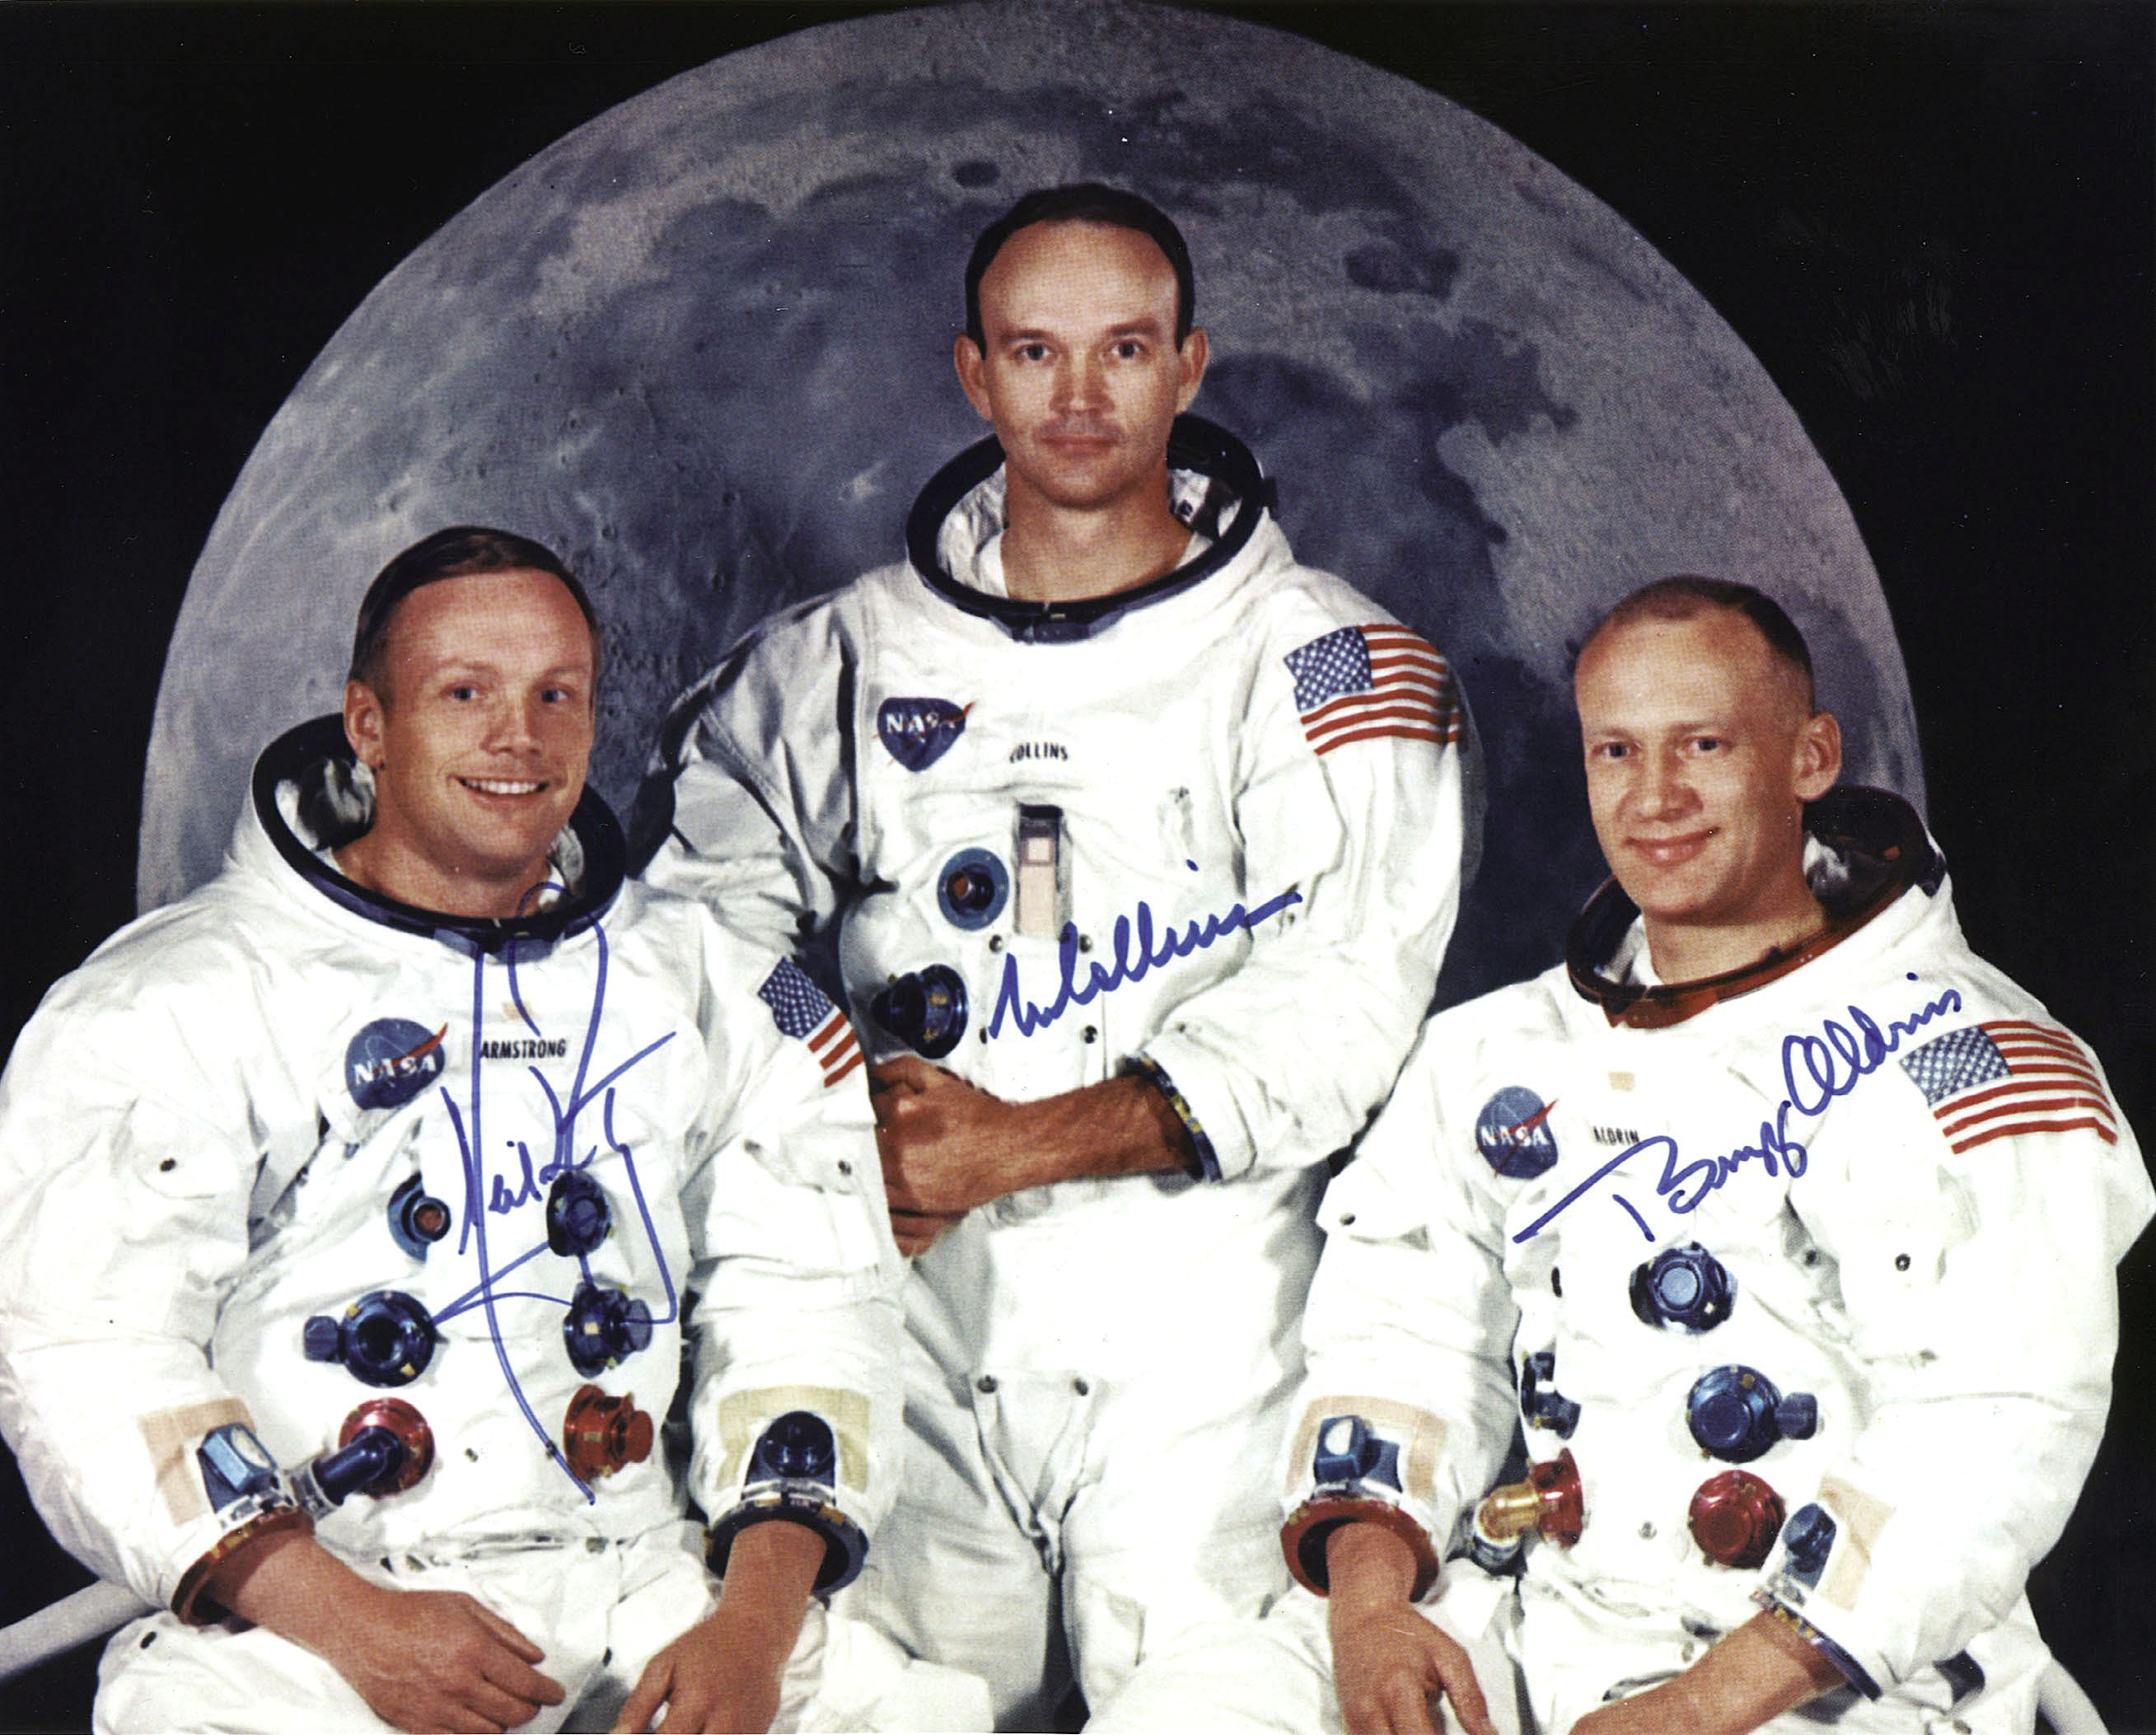 This photo released by NASA shows the crew of the Apollo 11 lunar landing mission L-R Neil Armstrong, commander, Michael Collins, command module pilot and Edwin E. Aldrin Jr, lunar module pilot, 01 May 1969. (NASA/AFP/Getty Images)